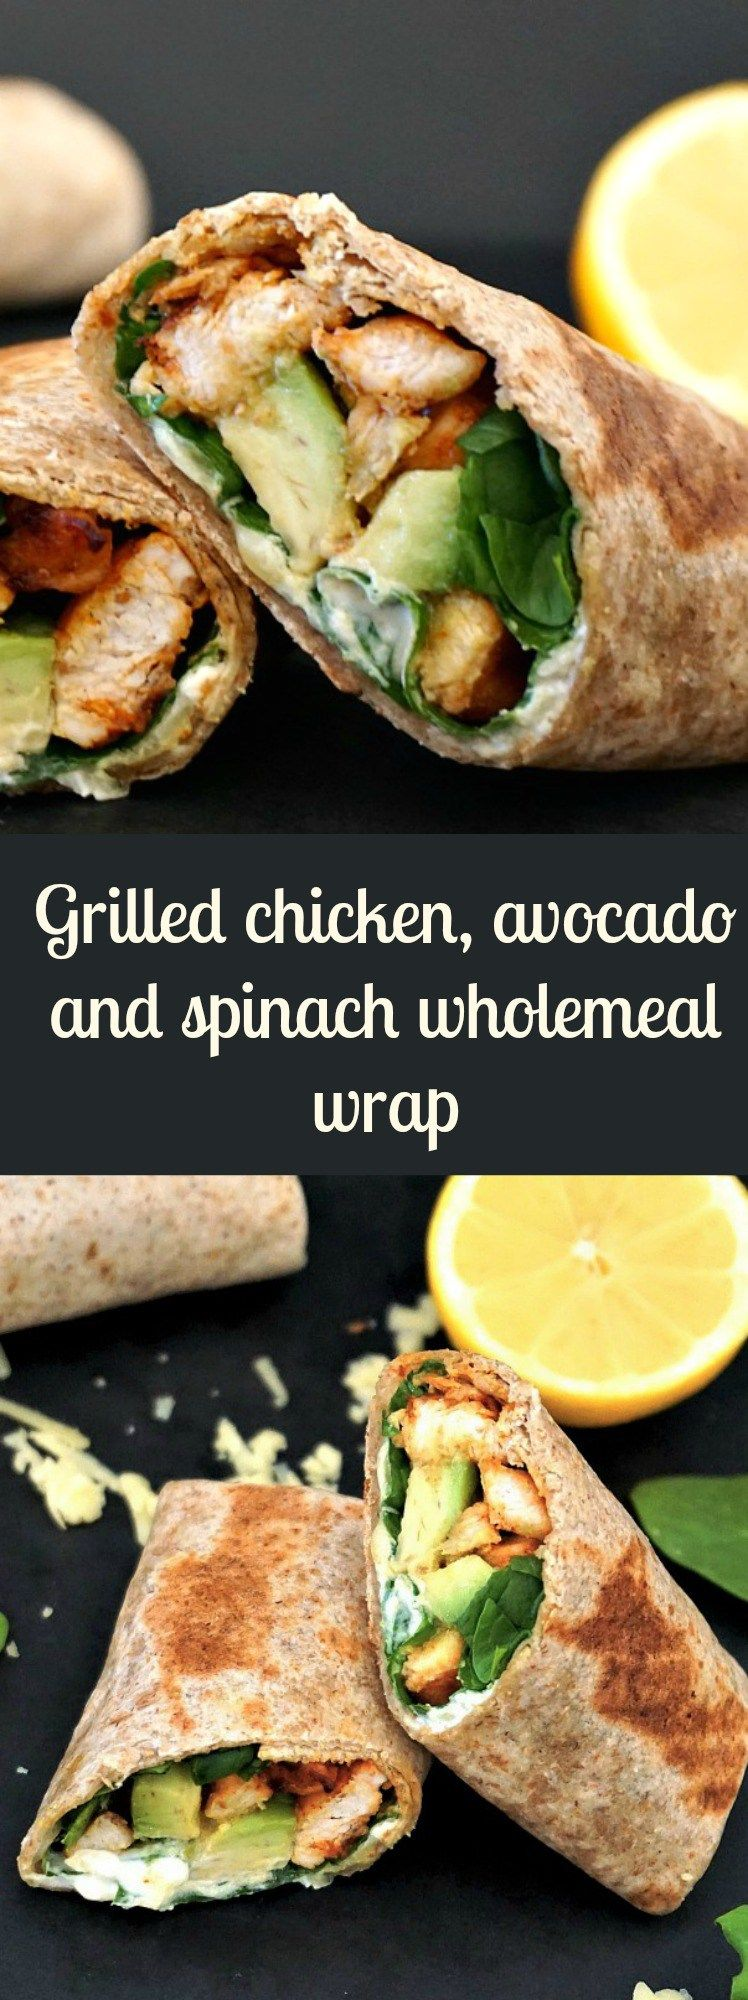 Grilled Chicken Avocado Wrap (Low Carb, High Protein) #healthyavocadorecipes